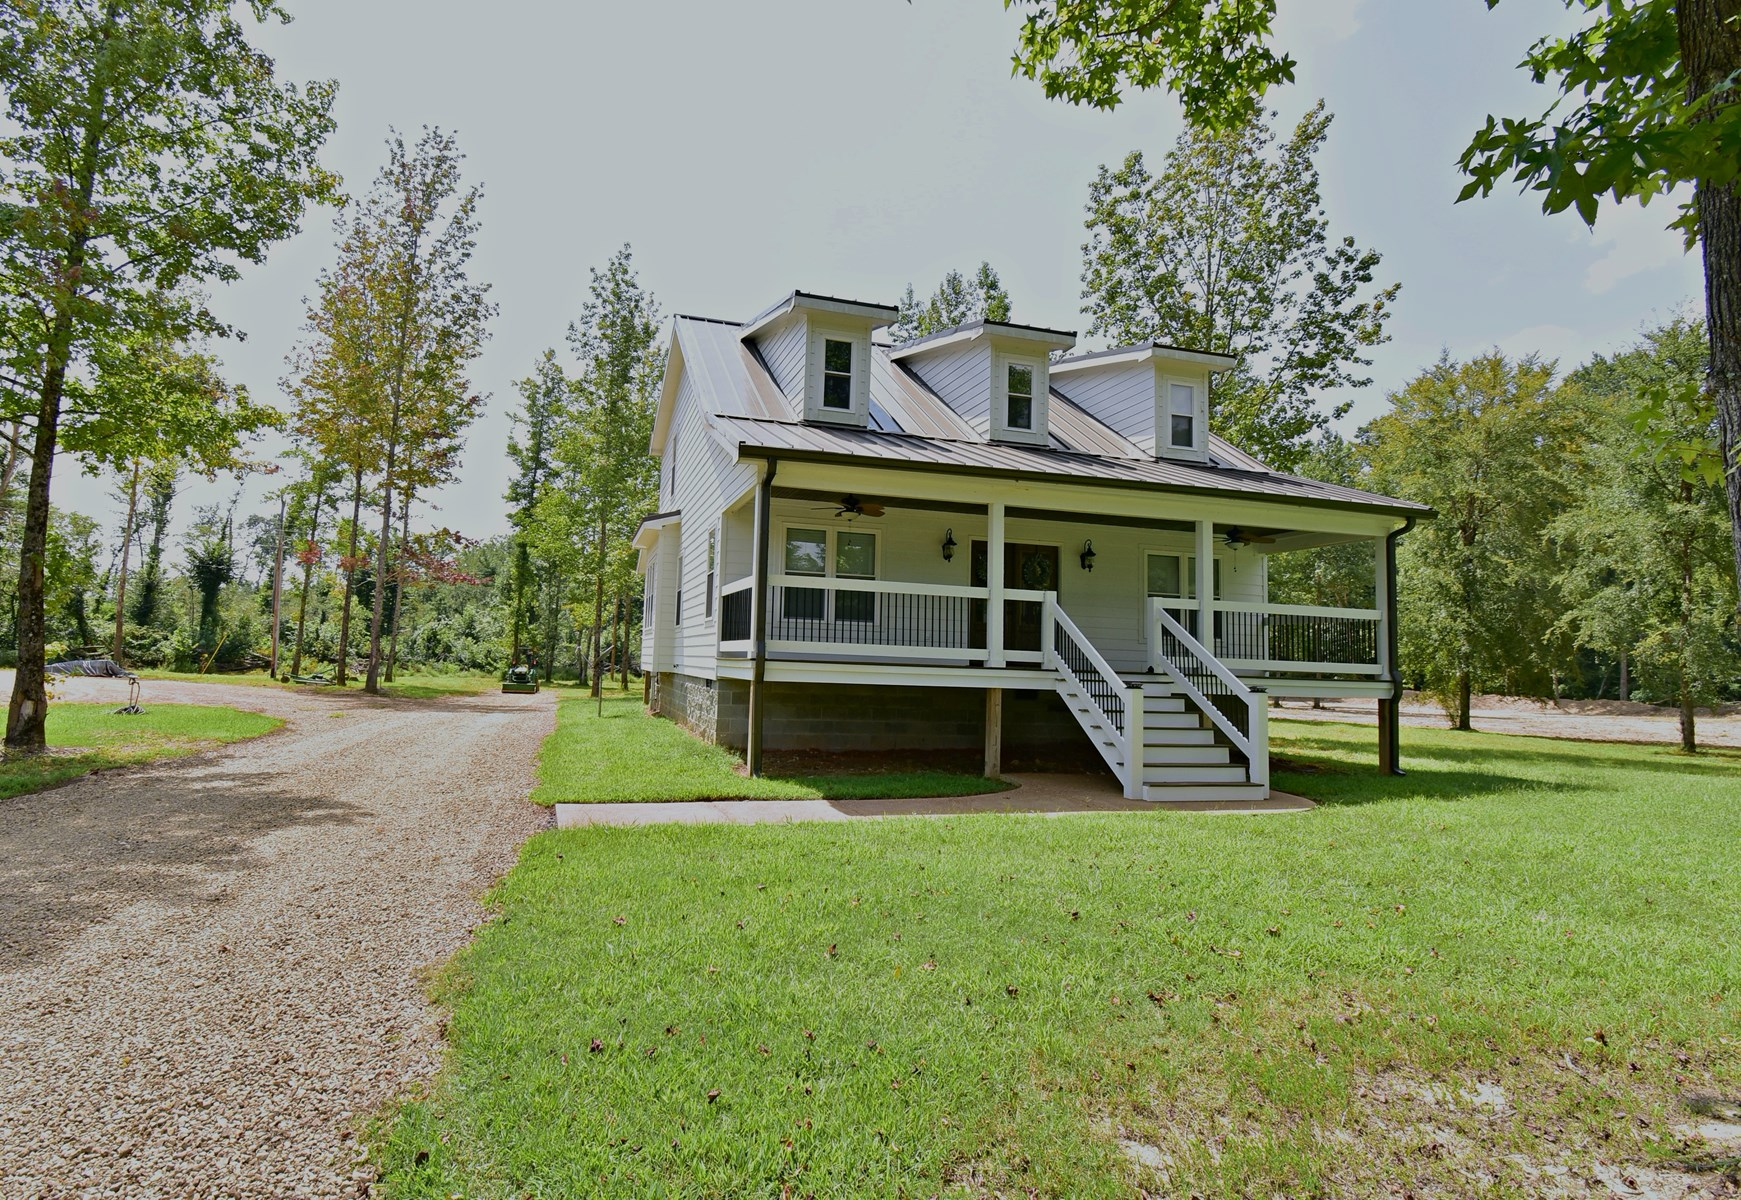 Tennessee River 4 bedroom 2 bath Home 10Ac $399,900